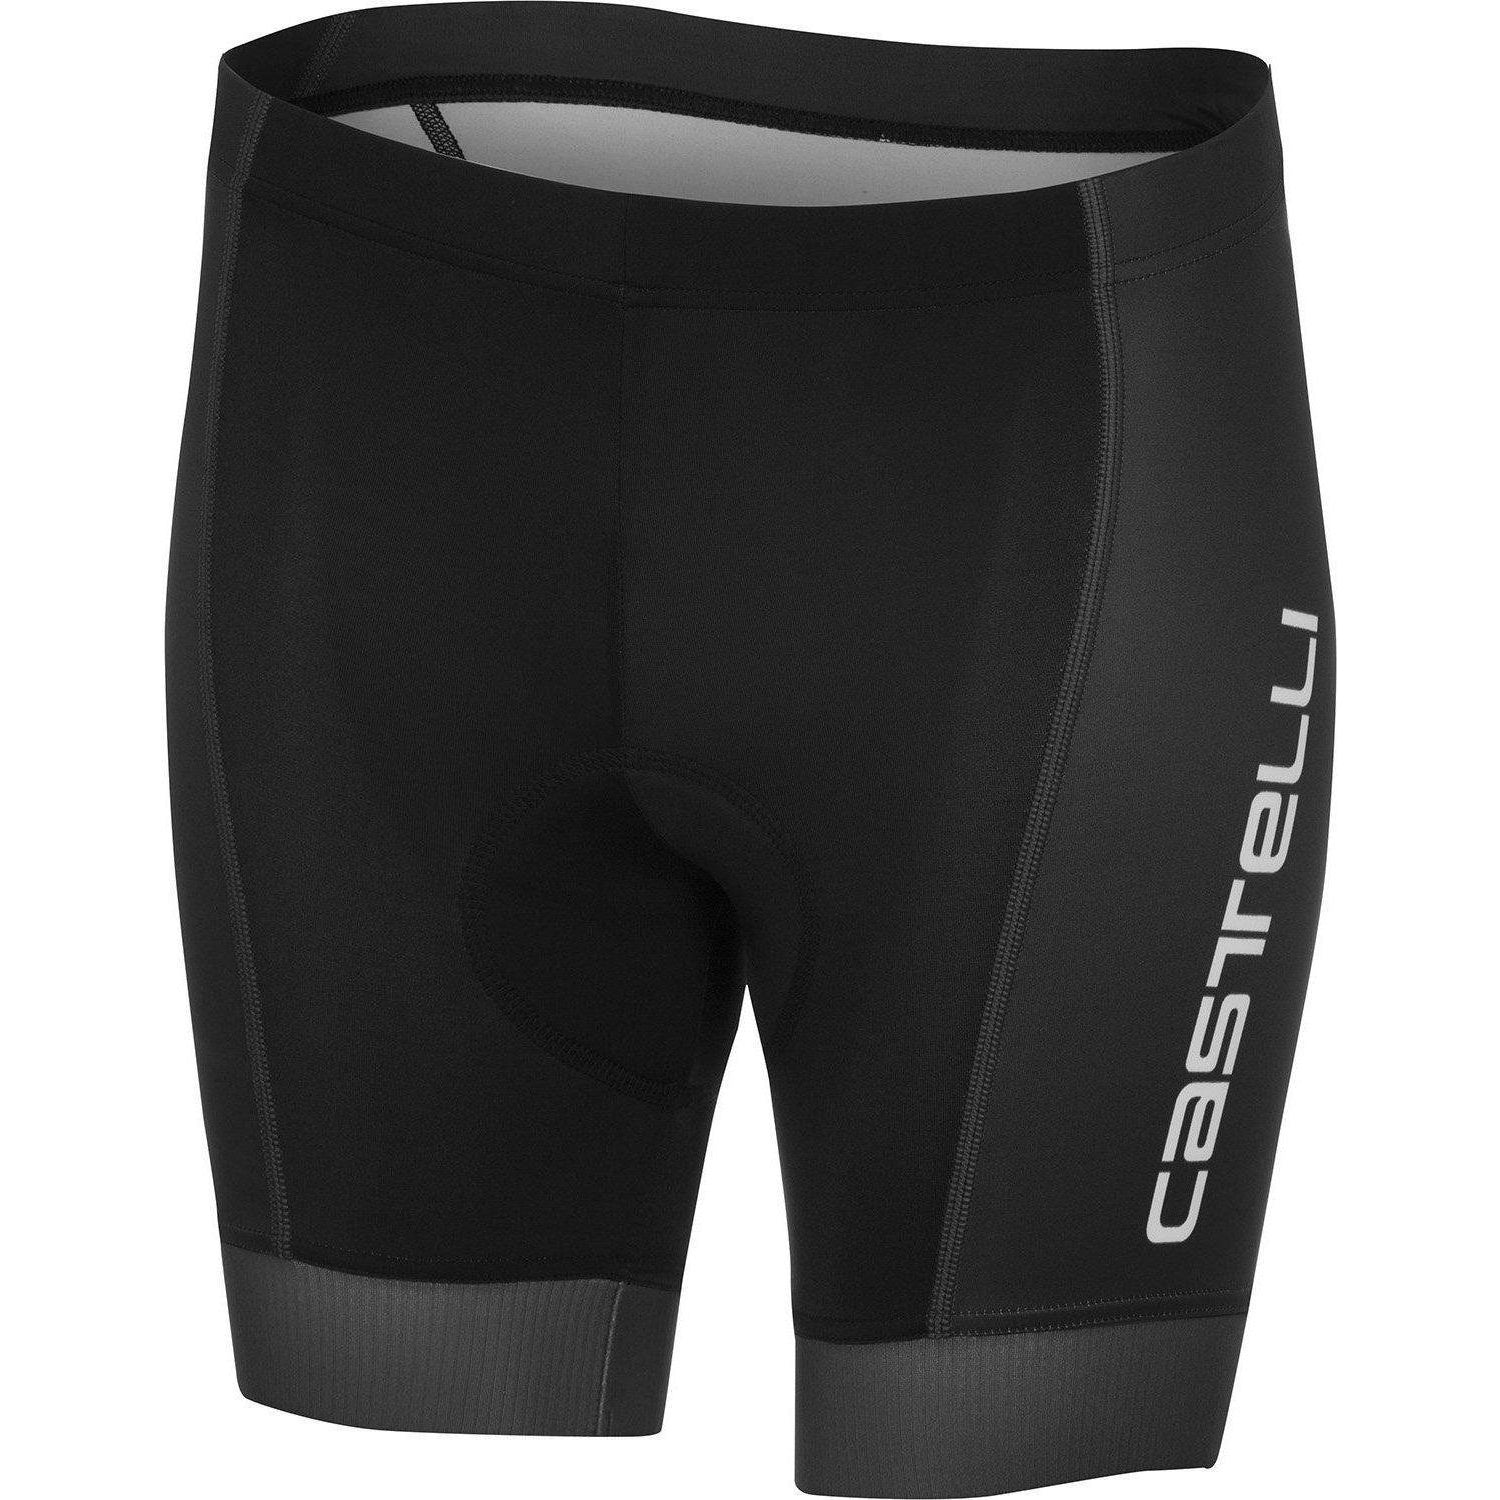 Castelli-Castelli Future Racer Youth Cycling Shorts-Black-10Y-CS1805201010A-saddleback-elite-performance-cycling